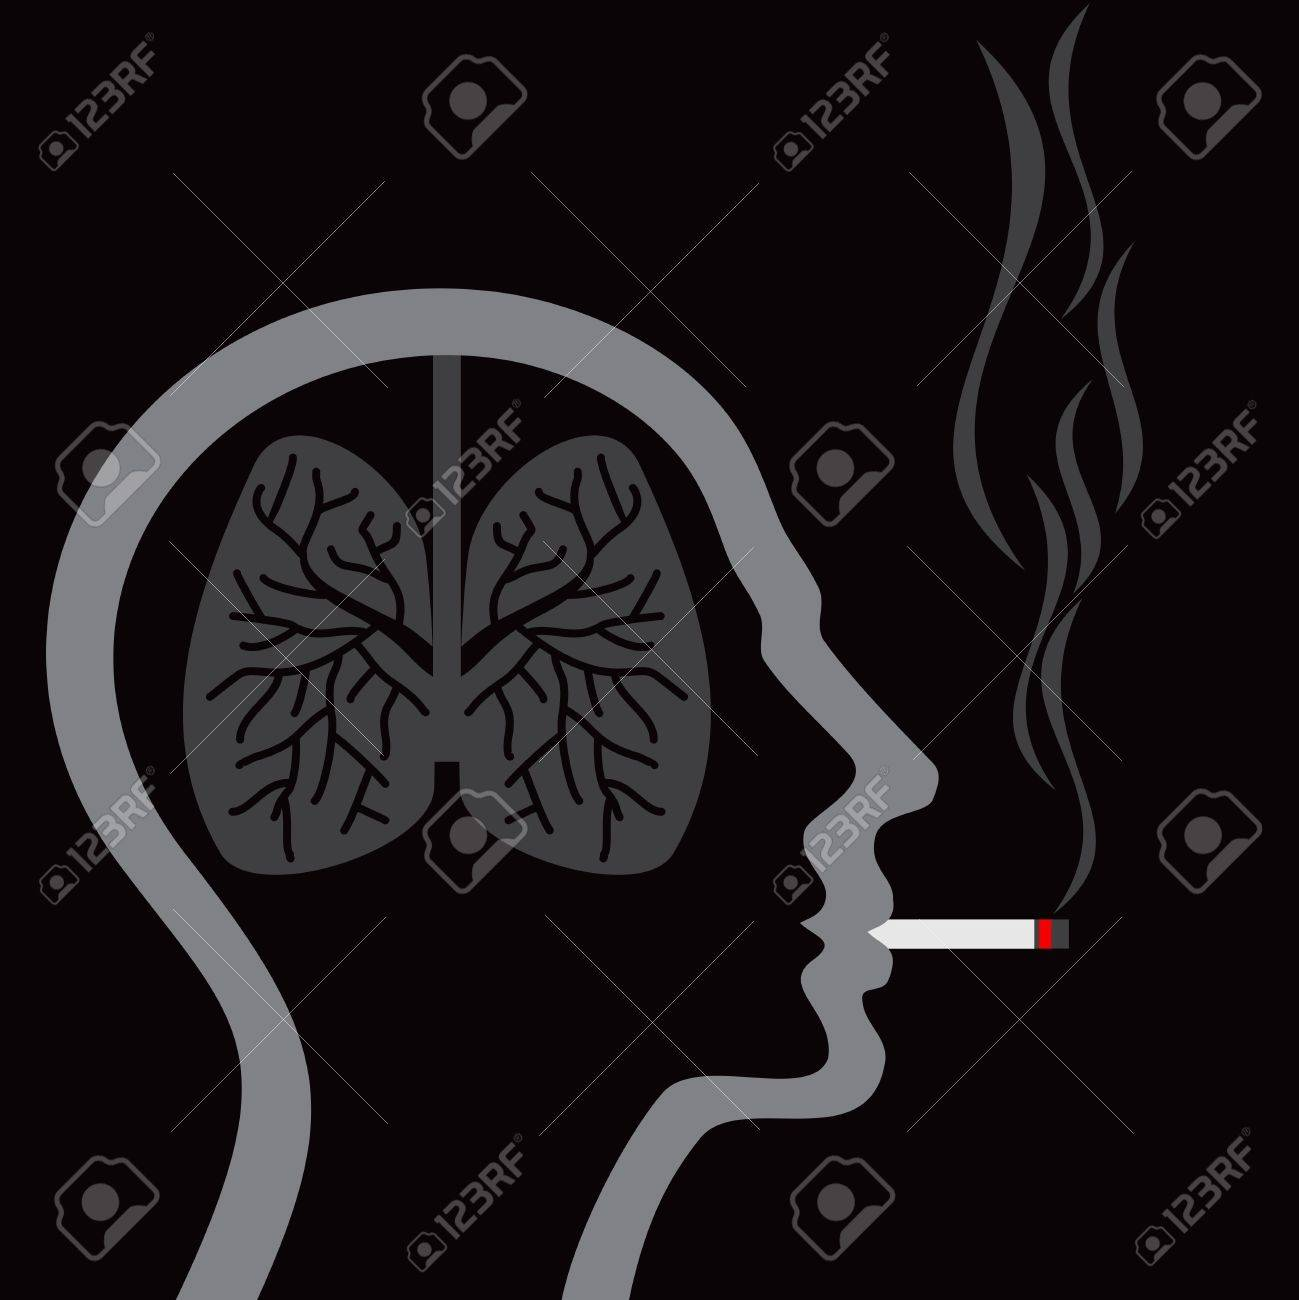 cigarette burning human lungs on abstract background Stock Vector - 20881629